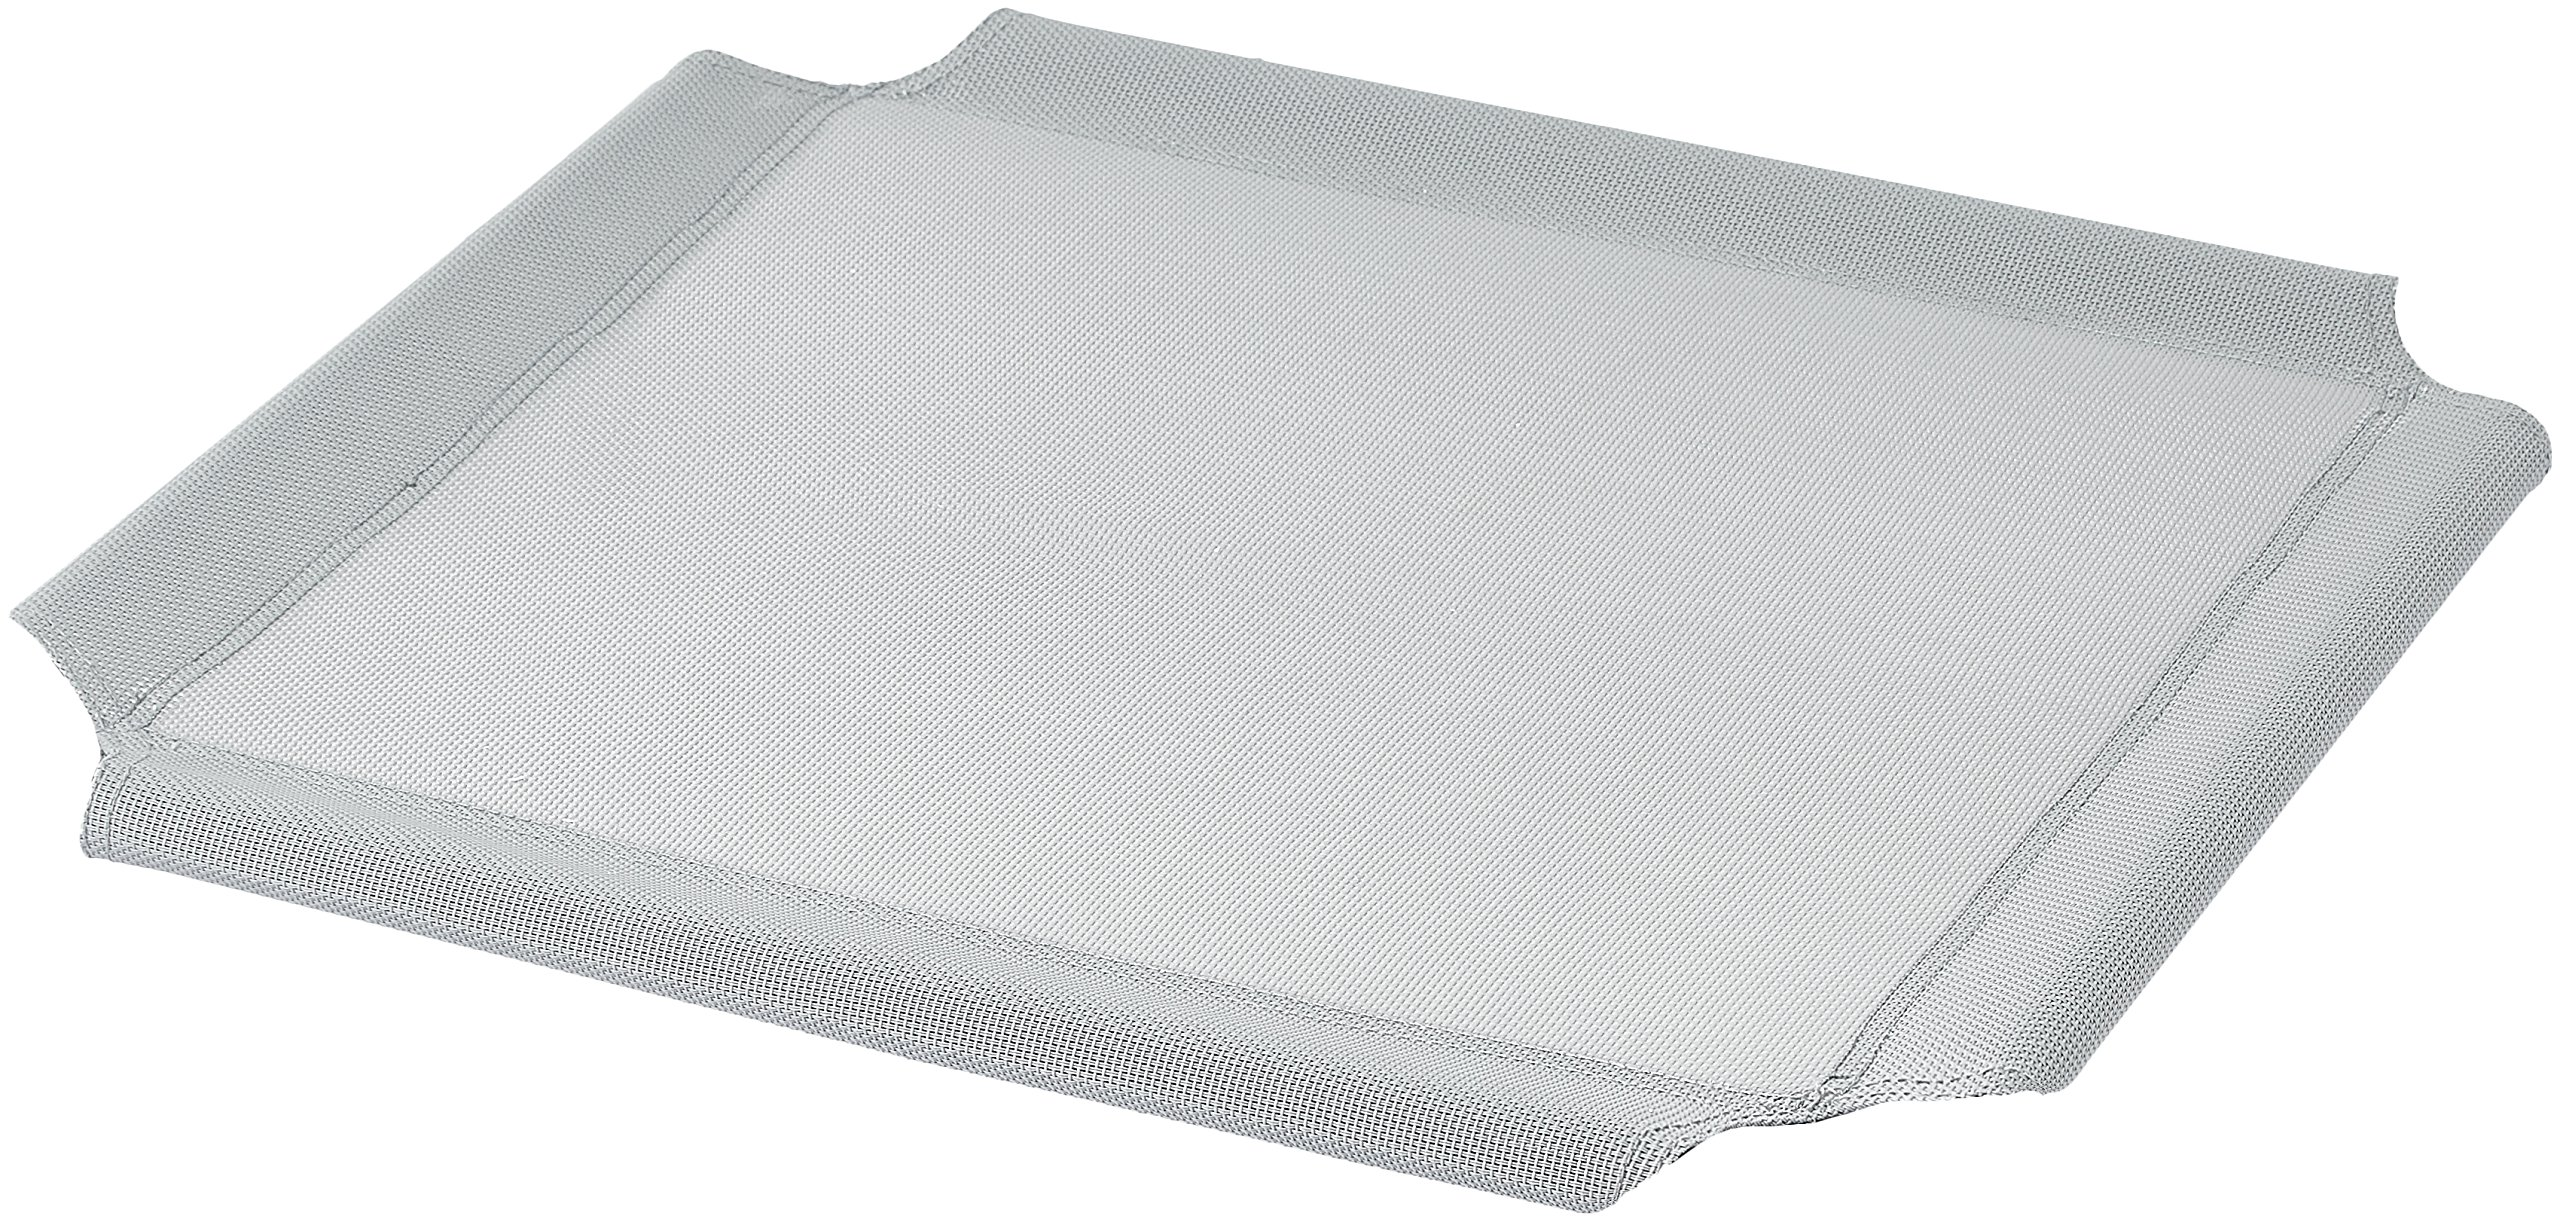 Amazon Basics Replacement Cover for Cooling Elevated Pet Bed